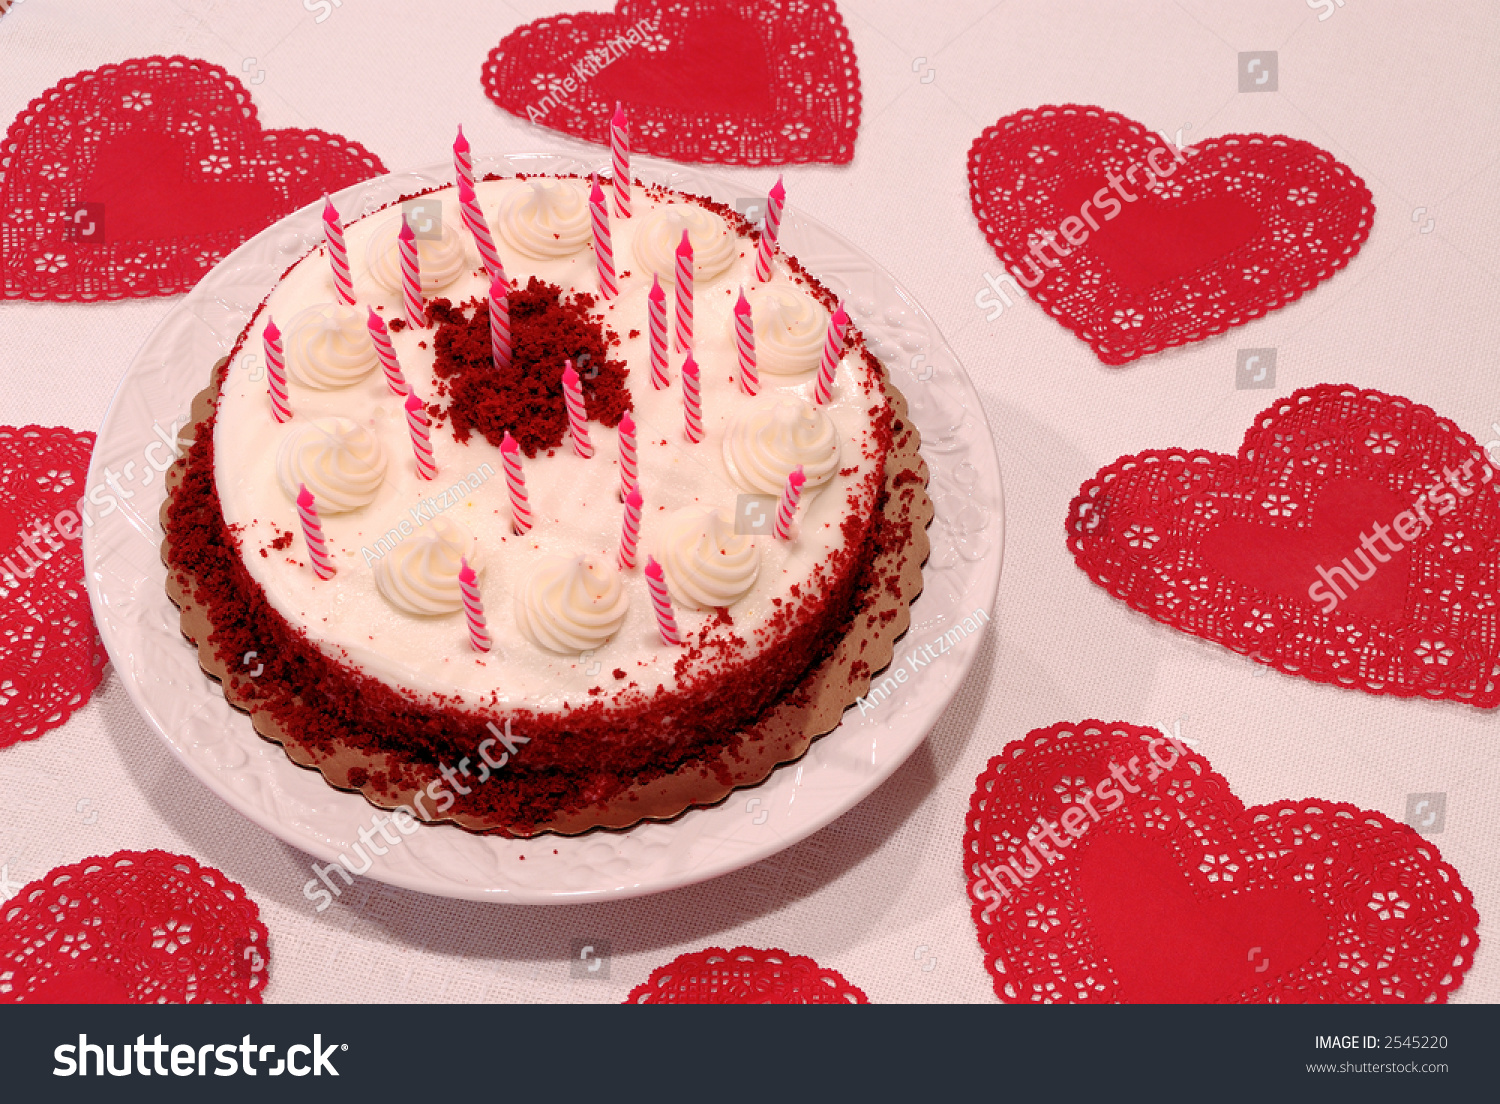 Amazing Valentine Birthday Cake Red Velvet Chocolate Stock Photo Edit Now Funny Birthday Cards Online Fluifree Goldxyz